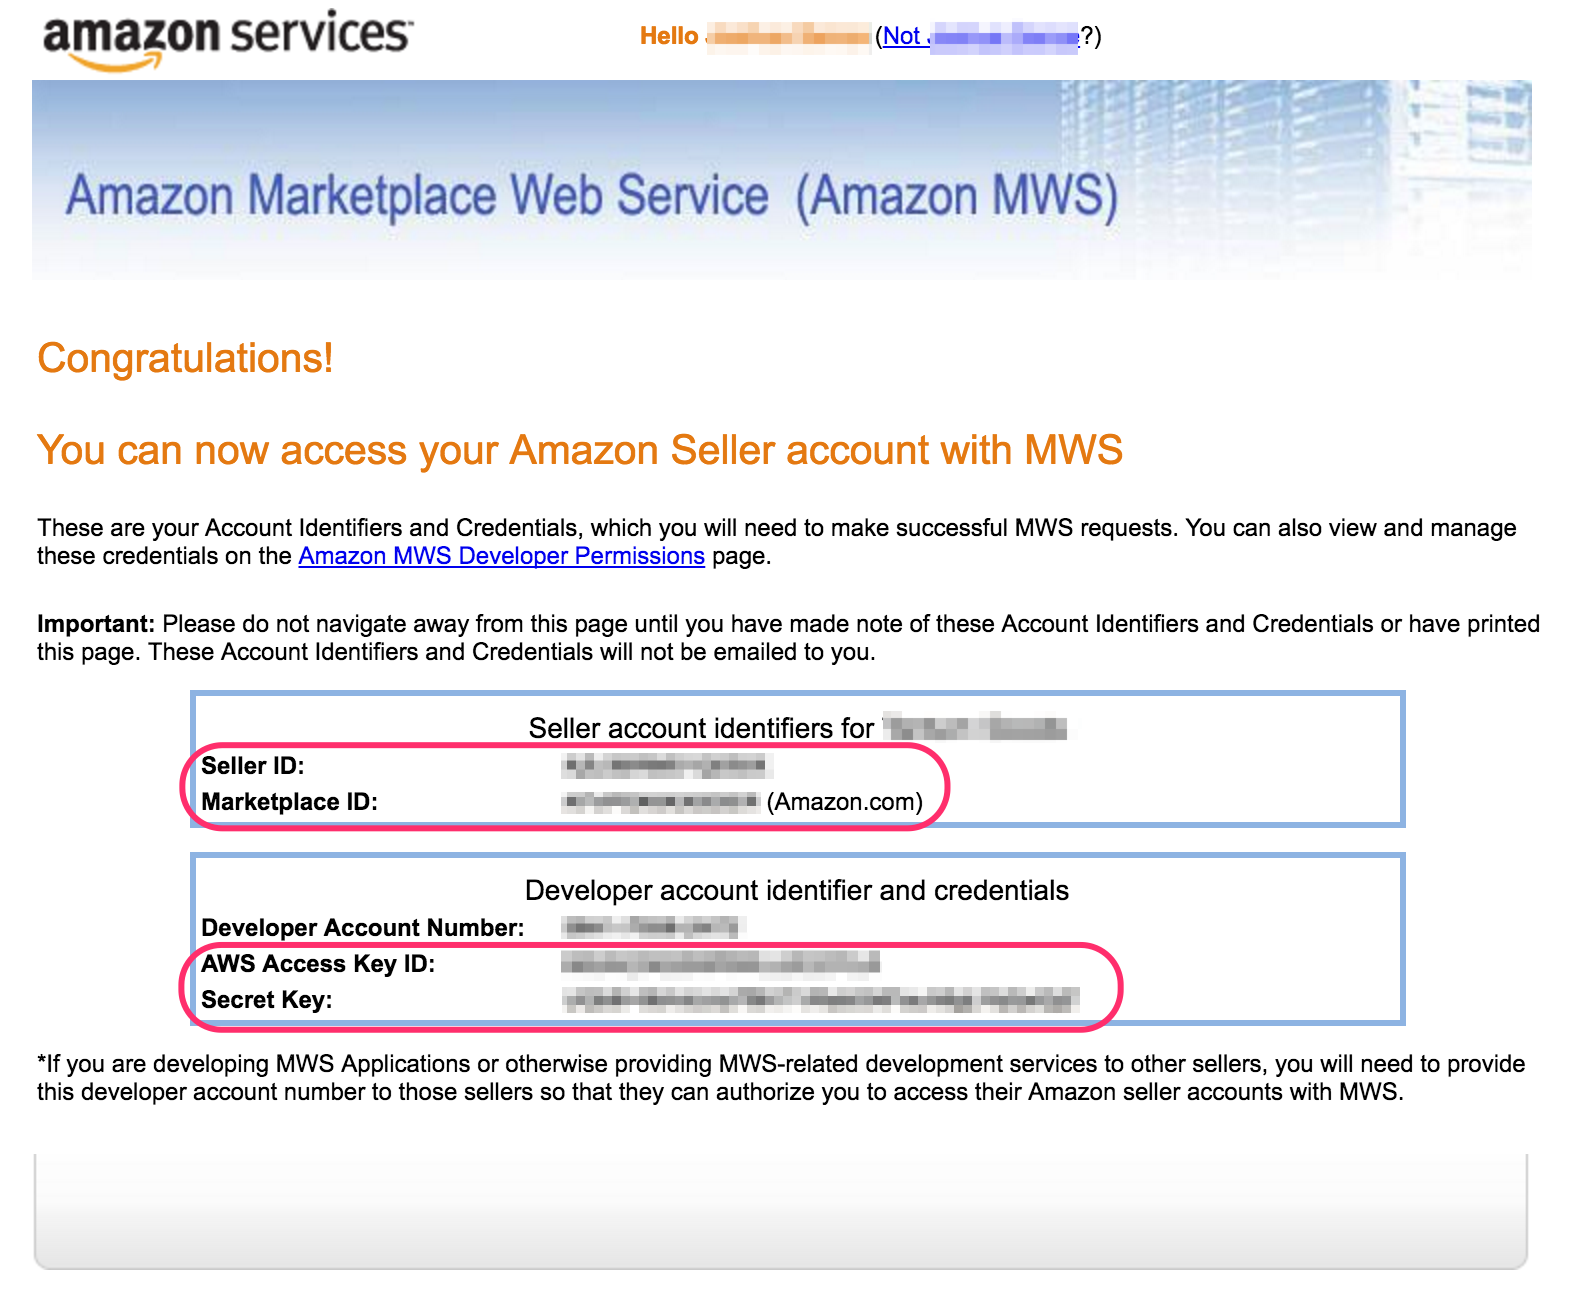 amazon marketplace web service